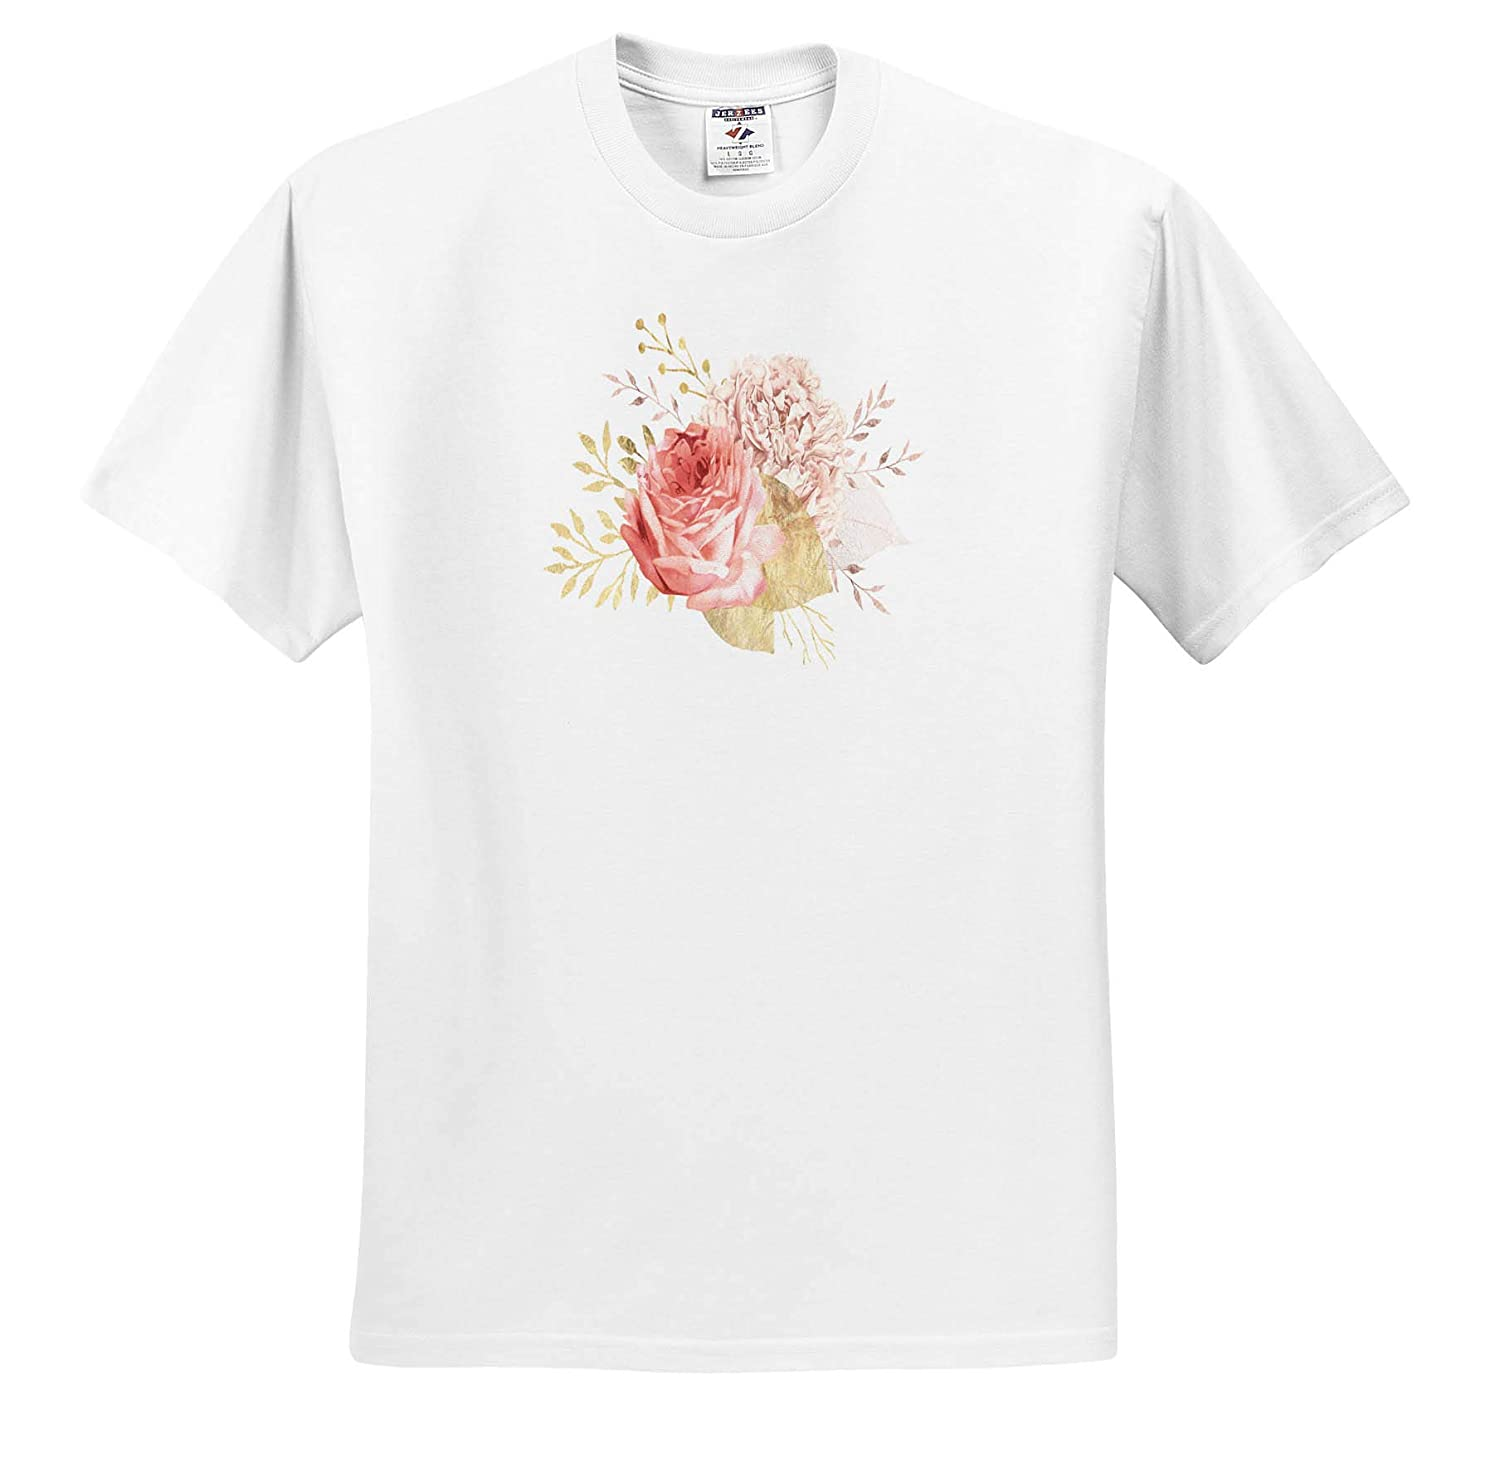 Pretty Pink and Image of Gold Floral Bouquet Illustration ts/_316304 Adult T-Shirt XL Design 3dRose Anne Marie Baugh